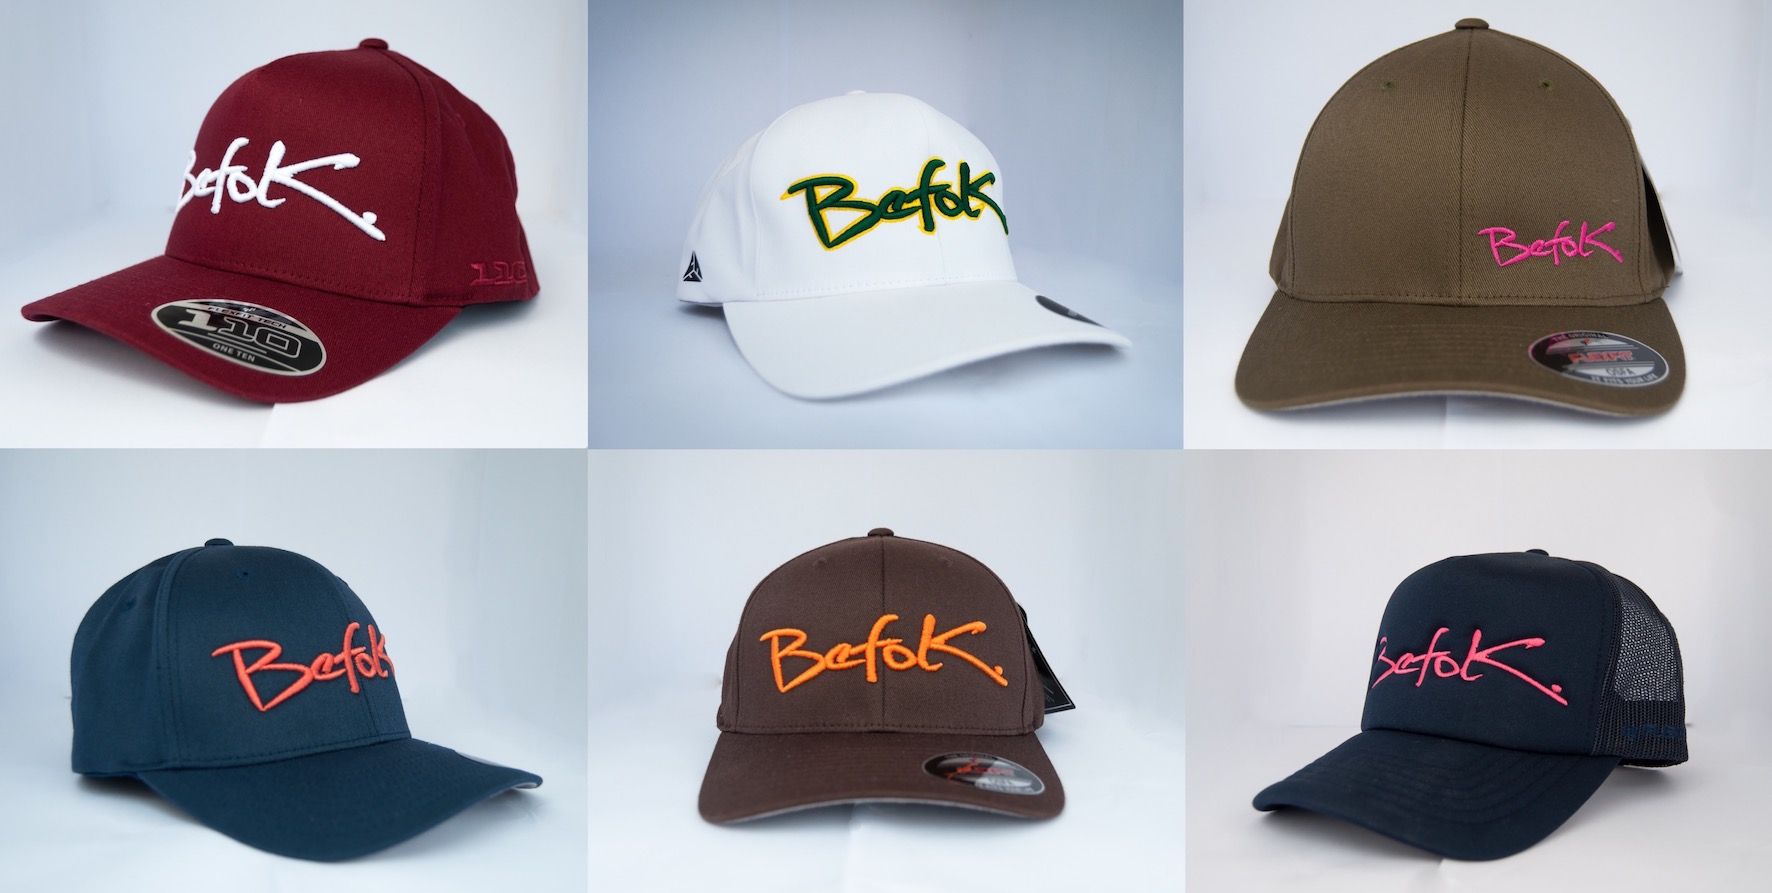 The BEFOK Caps selection